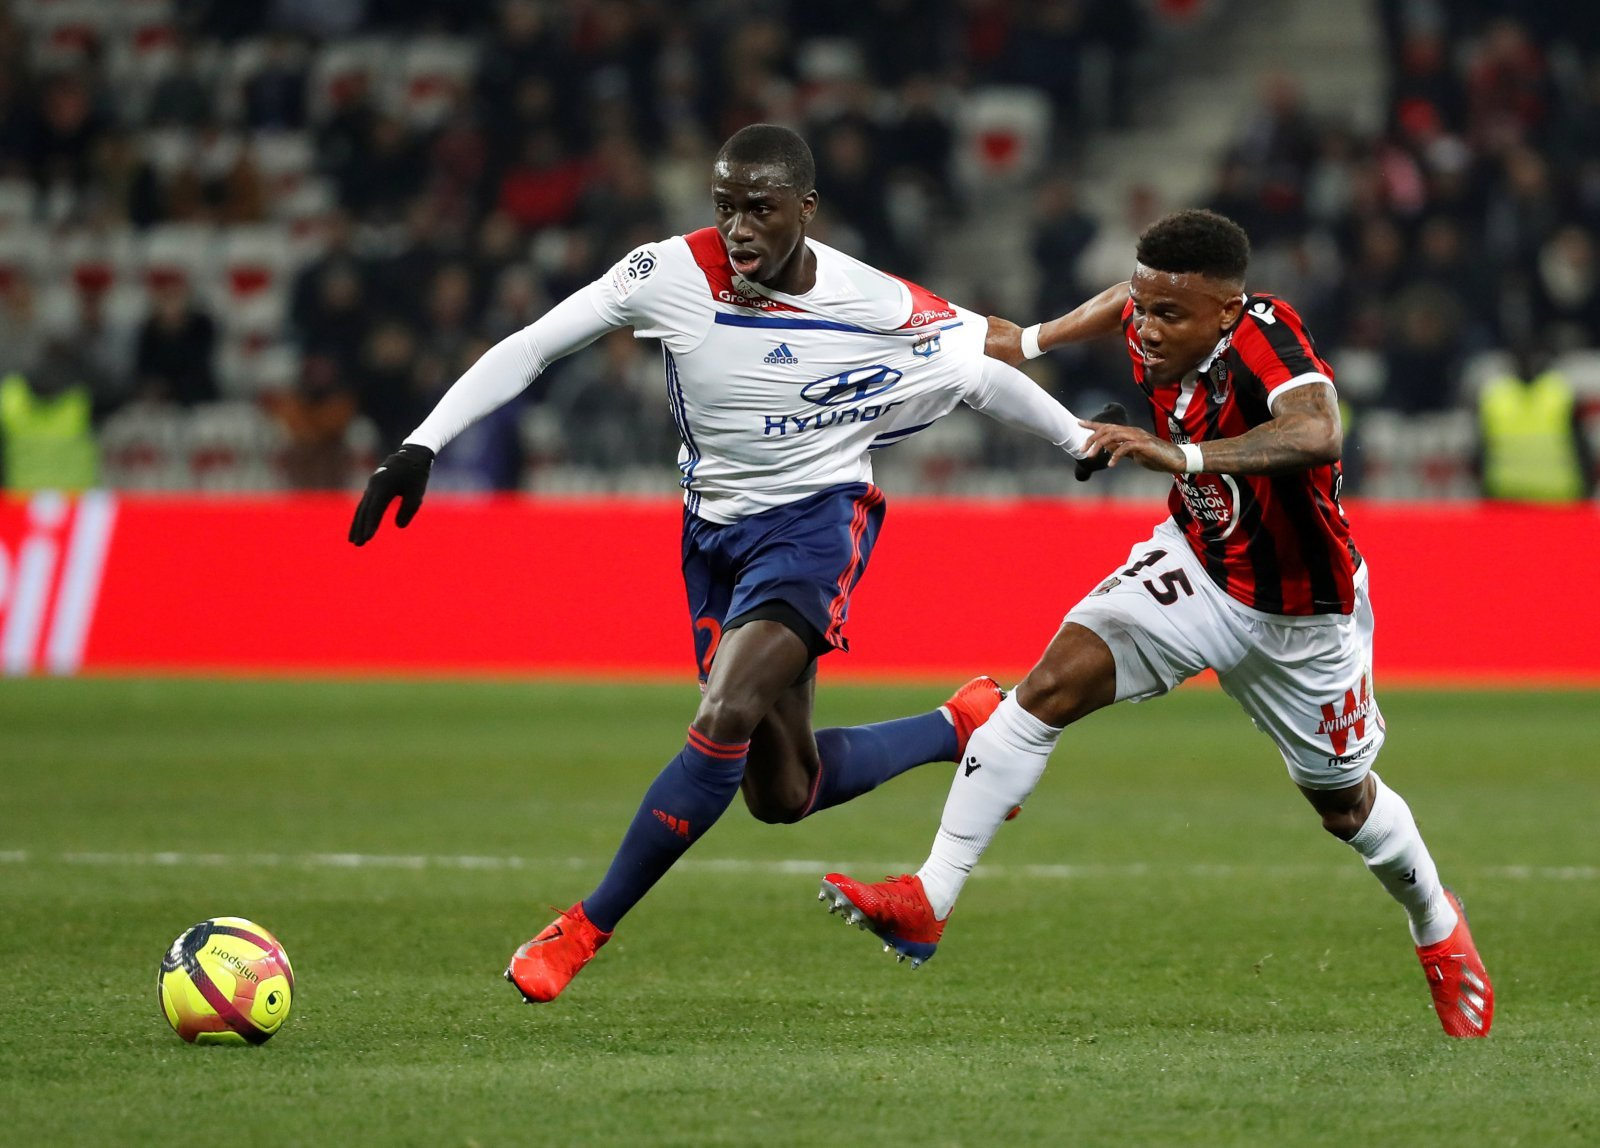 Ferland Mendy can take Manchester United to a different level next season